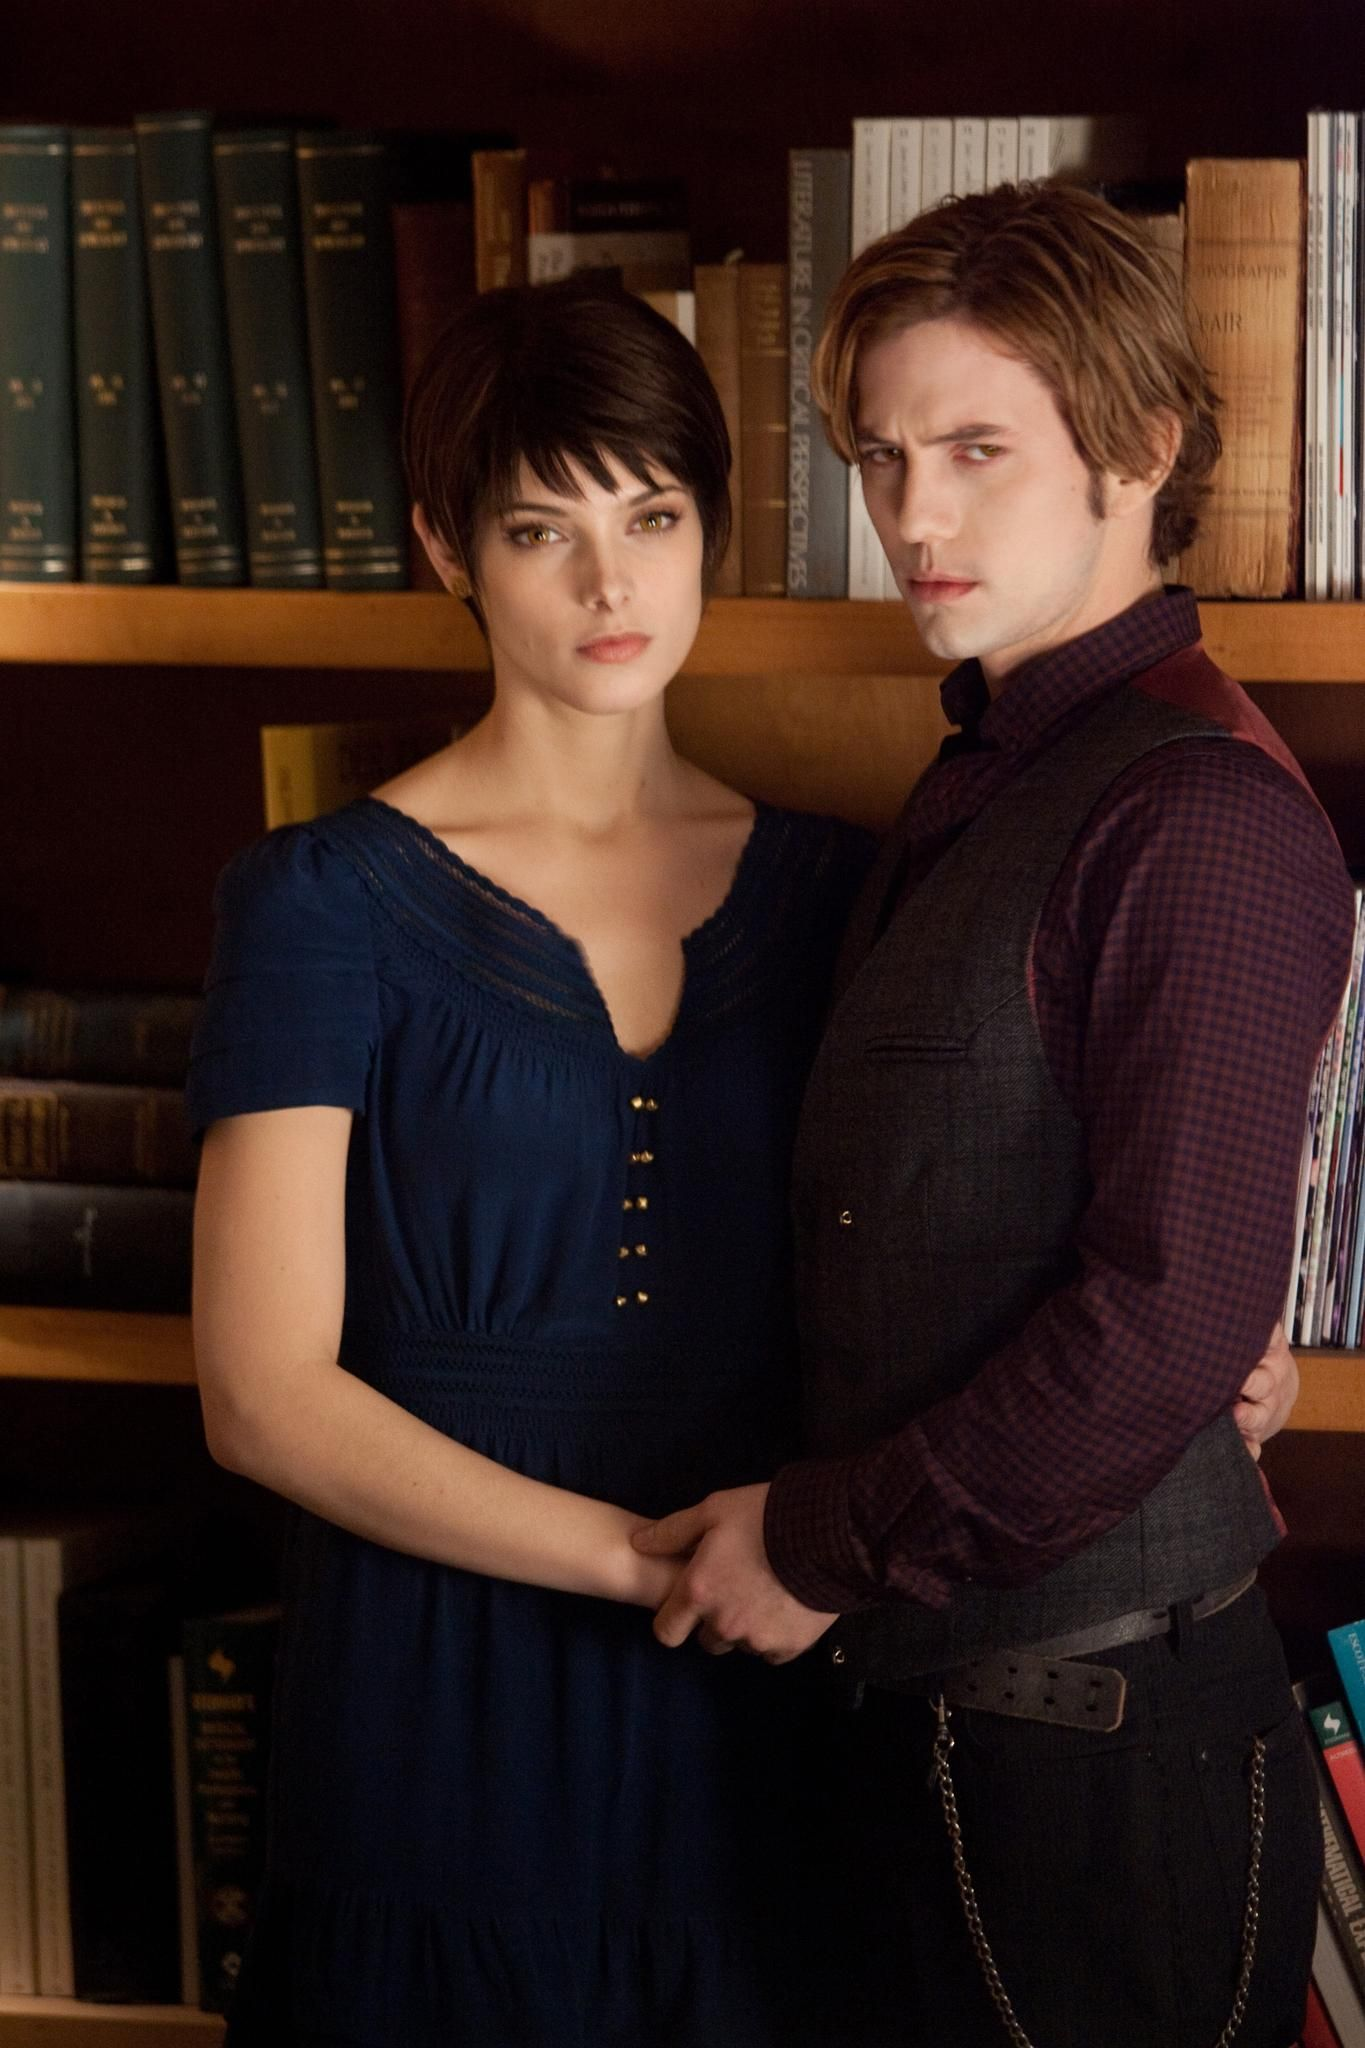 Still of Jackson Rathbone and Ashley Greene in The Twilight Saga: Breaking Dawn - Part 2 (2012) http://www.movpins.com/dHQxNjczNDM0/the-twilight-saga:-breaking-dawn-part-2-(2012)/still-936881664